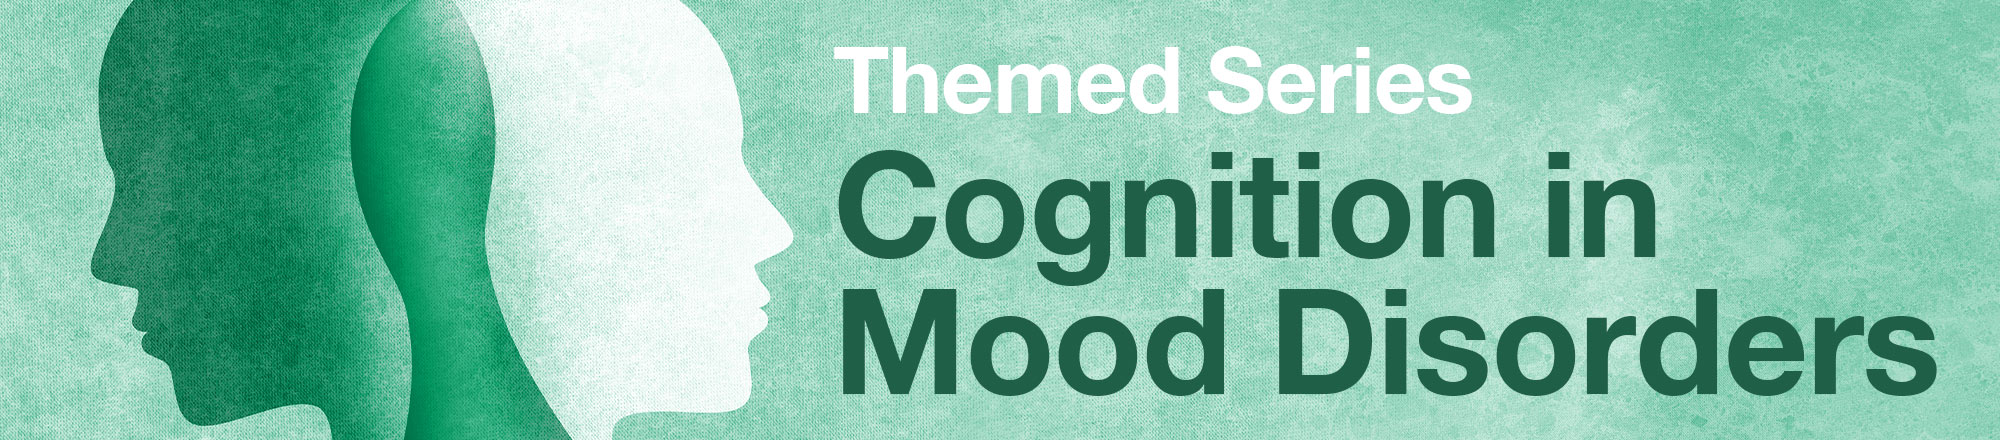 Cognition in Mood Disorders